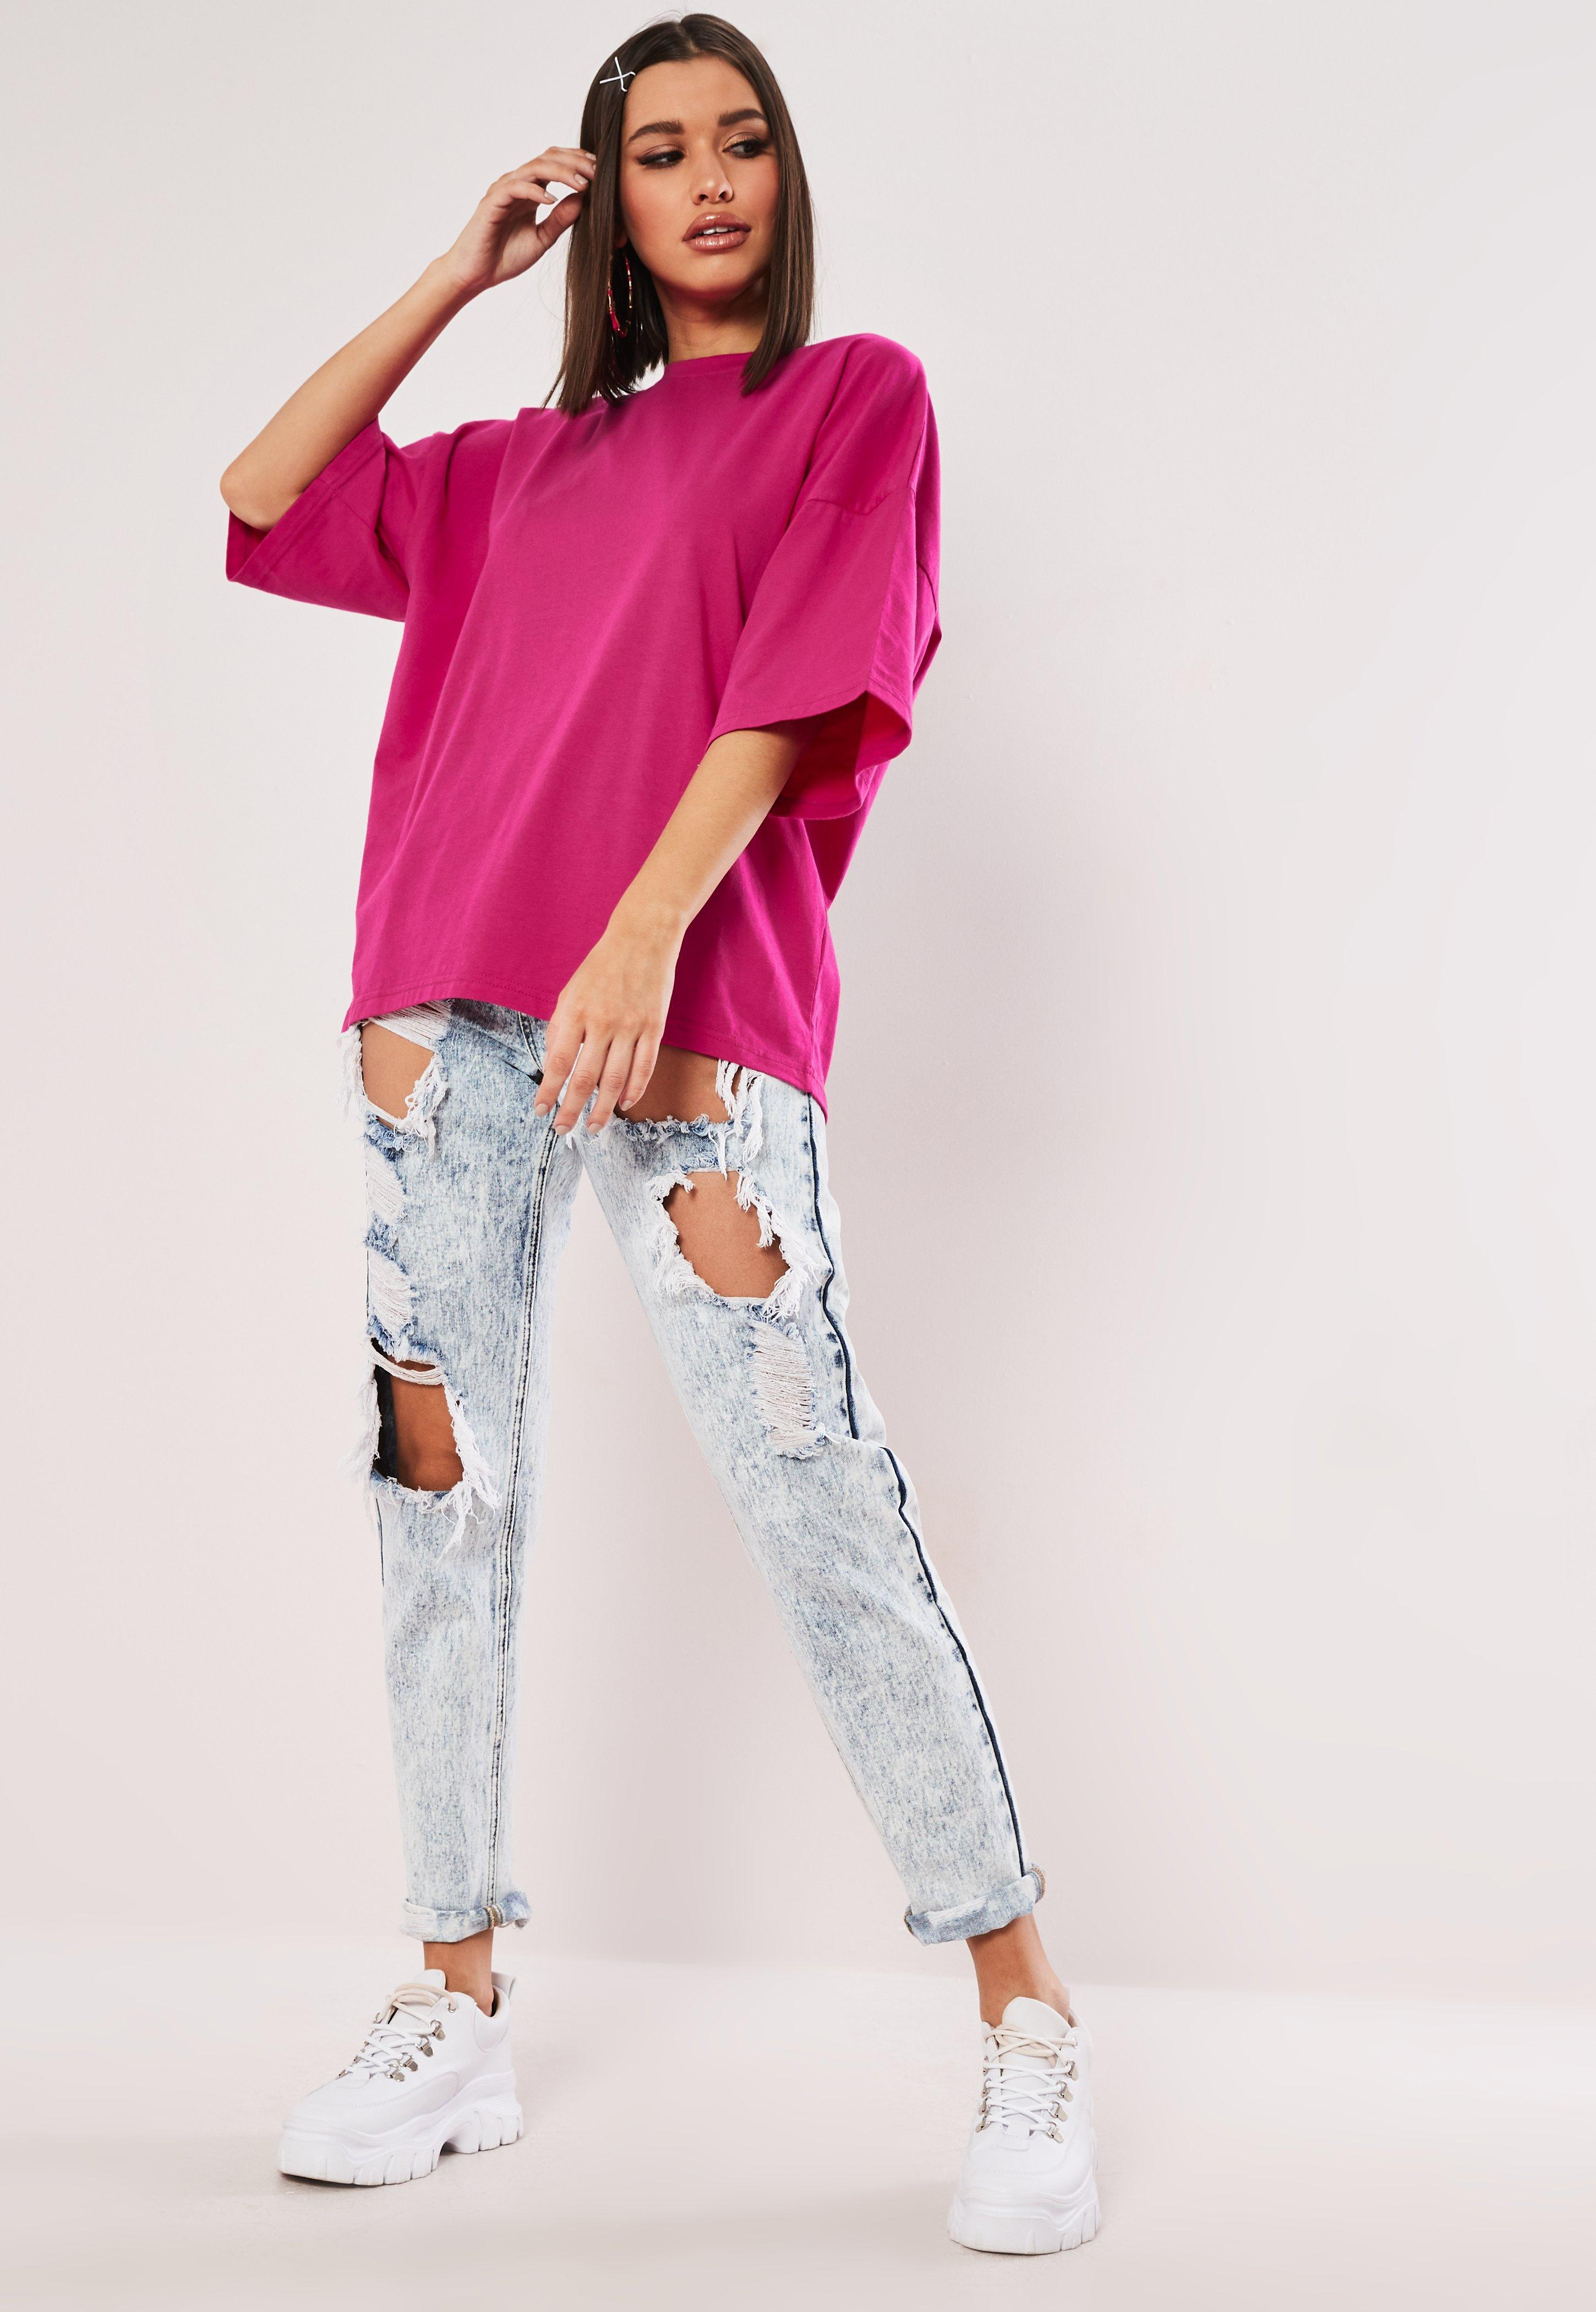 cd7298170 Lyst - Missguided Pink Drop Shoulder Oversized T Shirt in Pink